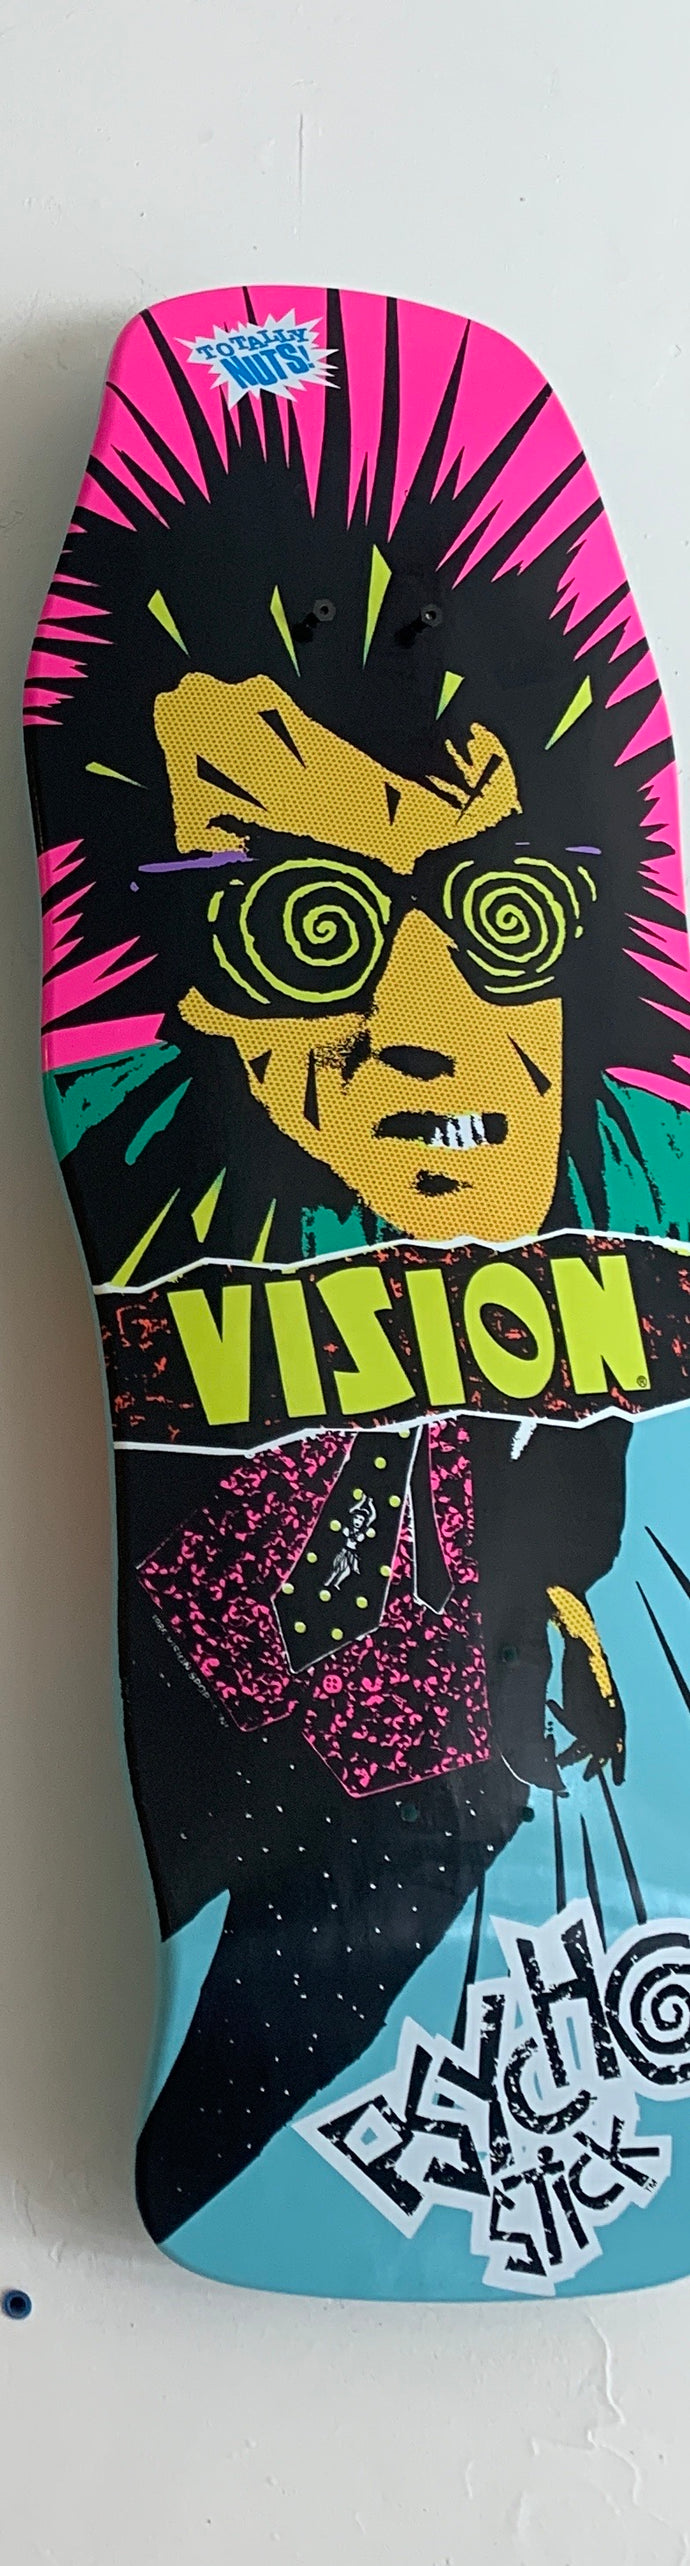 Vision Old School Complete